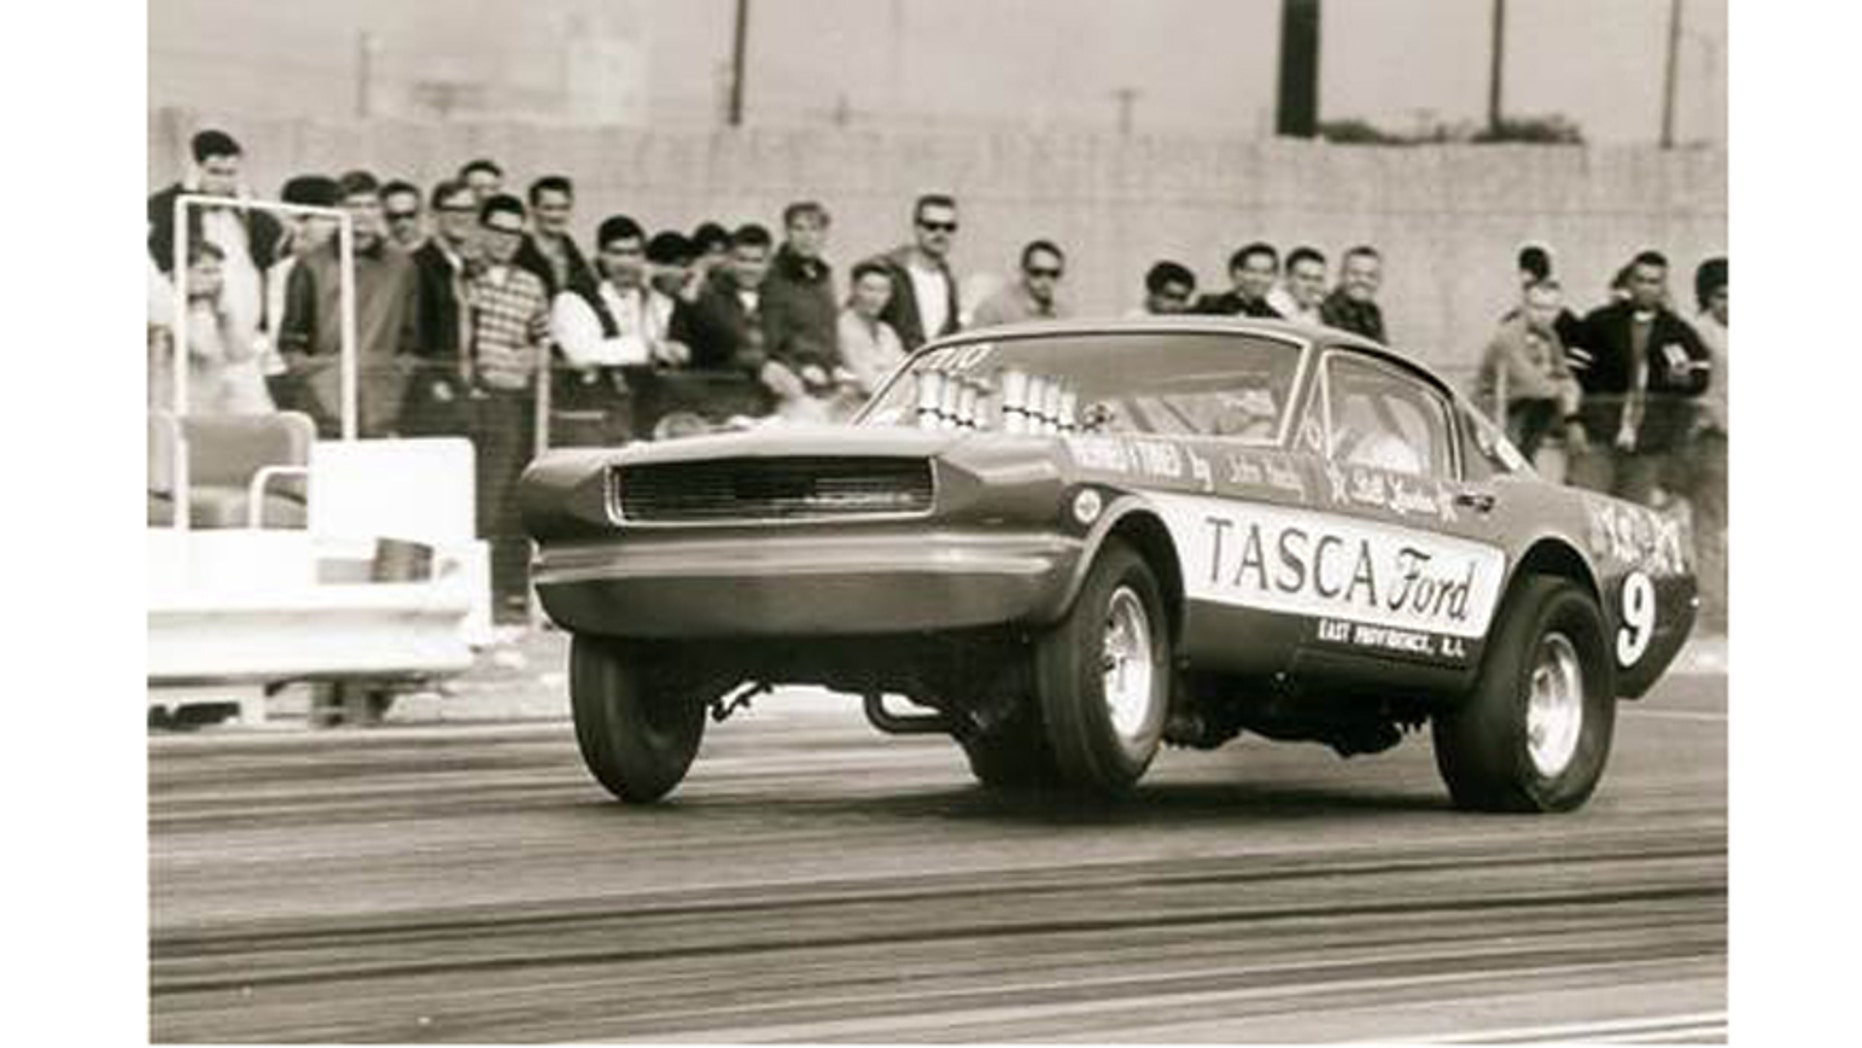 "The Tasca Mystery 9 altered-wheelbase Mustang takes a bite of California's Irwindale Raceway at the 1966 AHRA Winternationals with more than 600-hp worth of Hillborn-injected Ford 427 SOHC ""cammer"" V-8 authority."